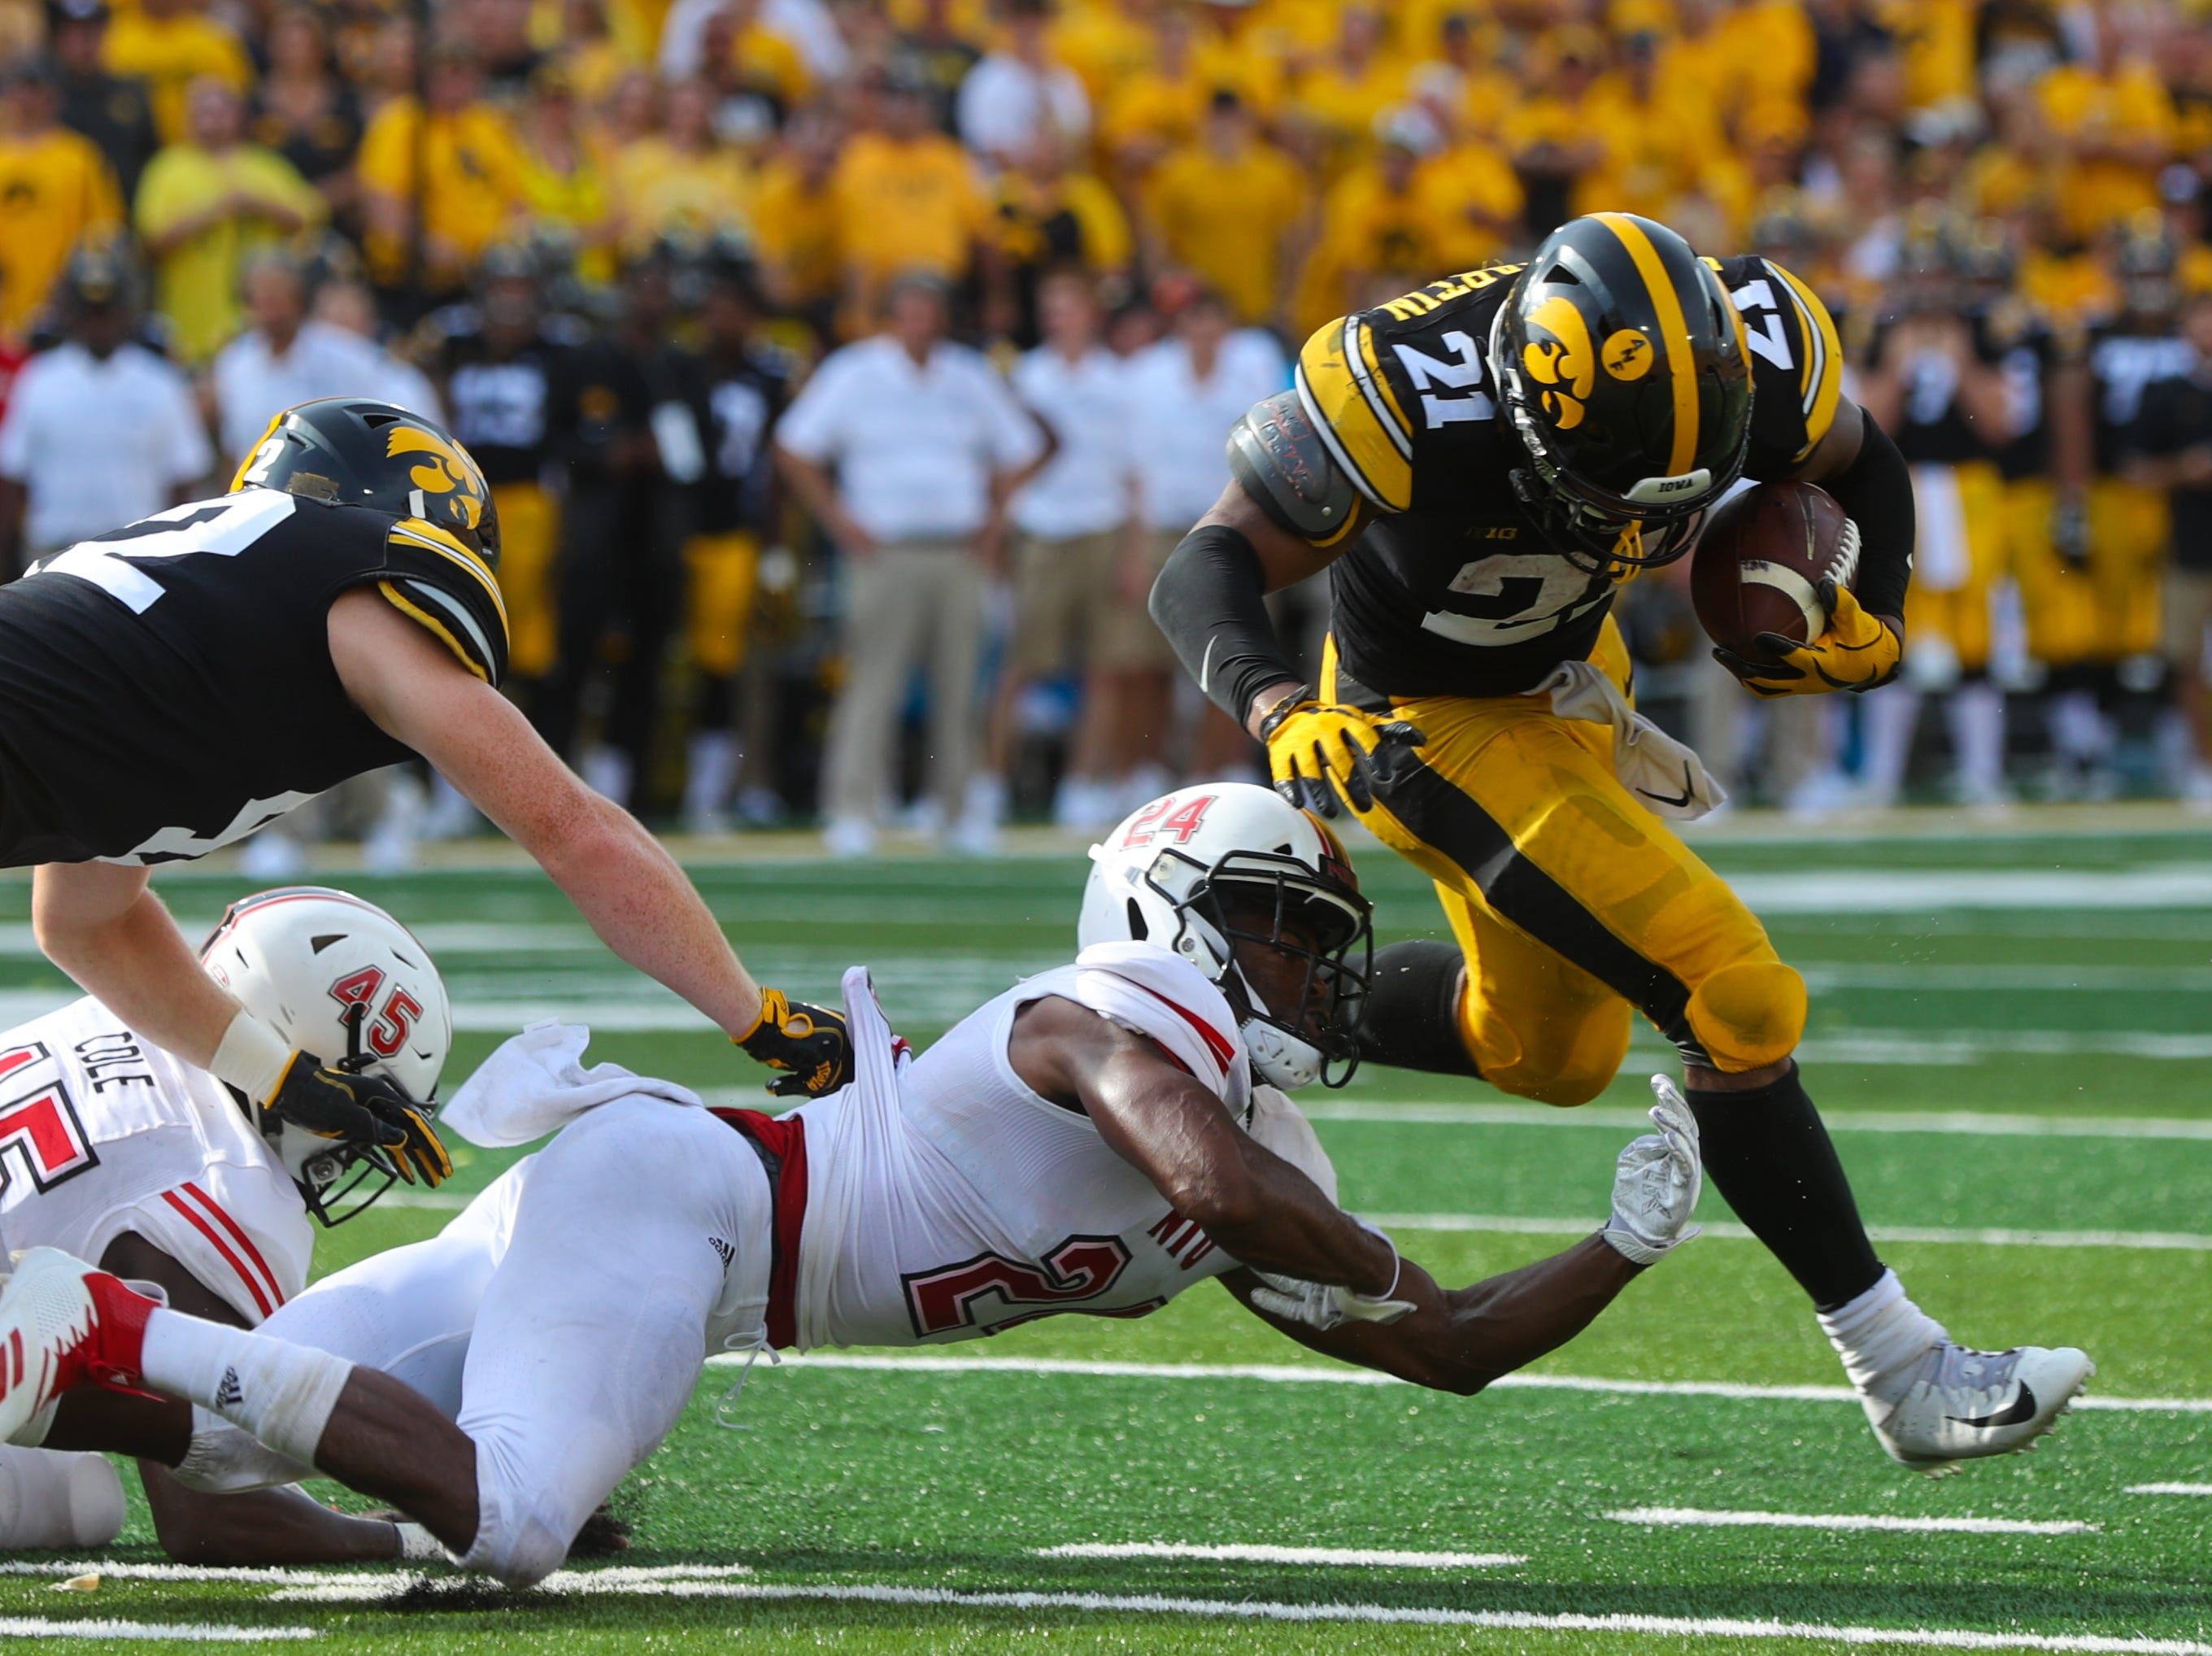 Iowa's Ivory Kelly-Martin breaks away as he runs to the end zone for a touchdown during the Hawkeyes' game against Northern Illinois at Kinnick Stadium on Satuday, Sept. 1, 2018.